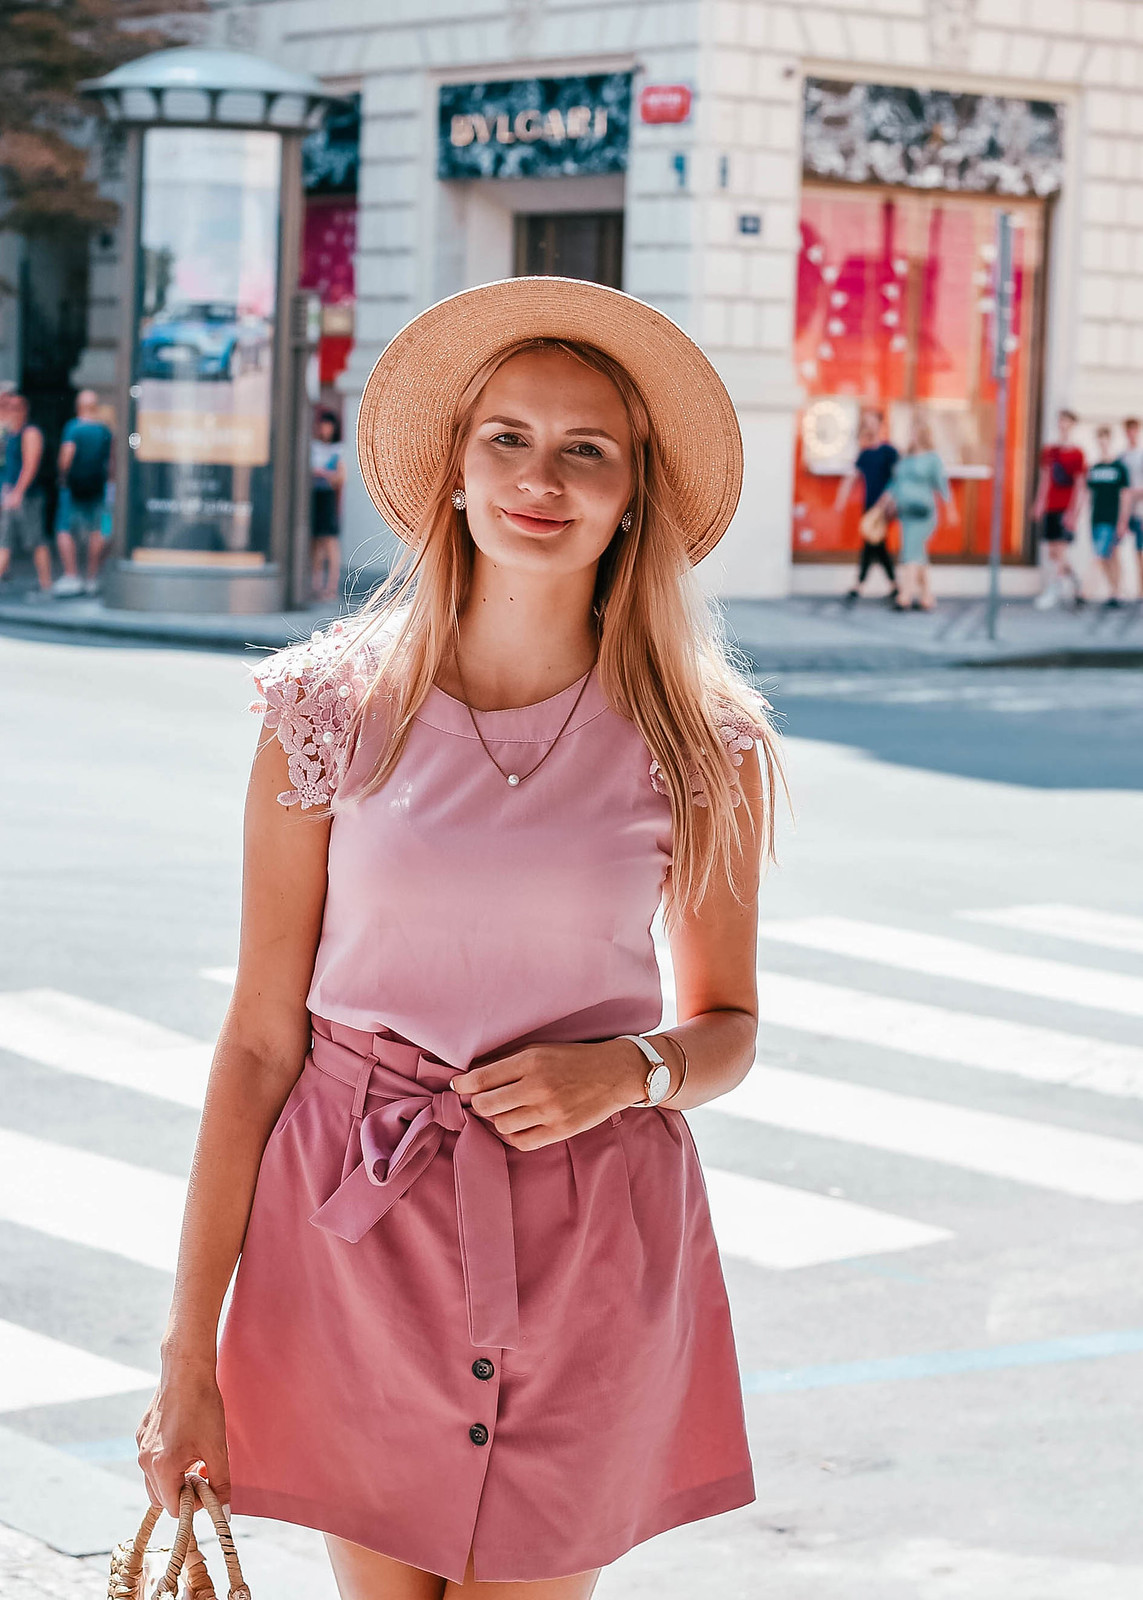 Prague fashion blogger